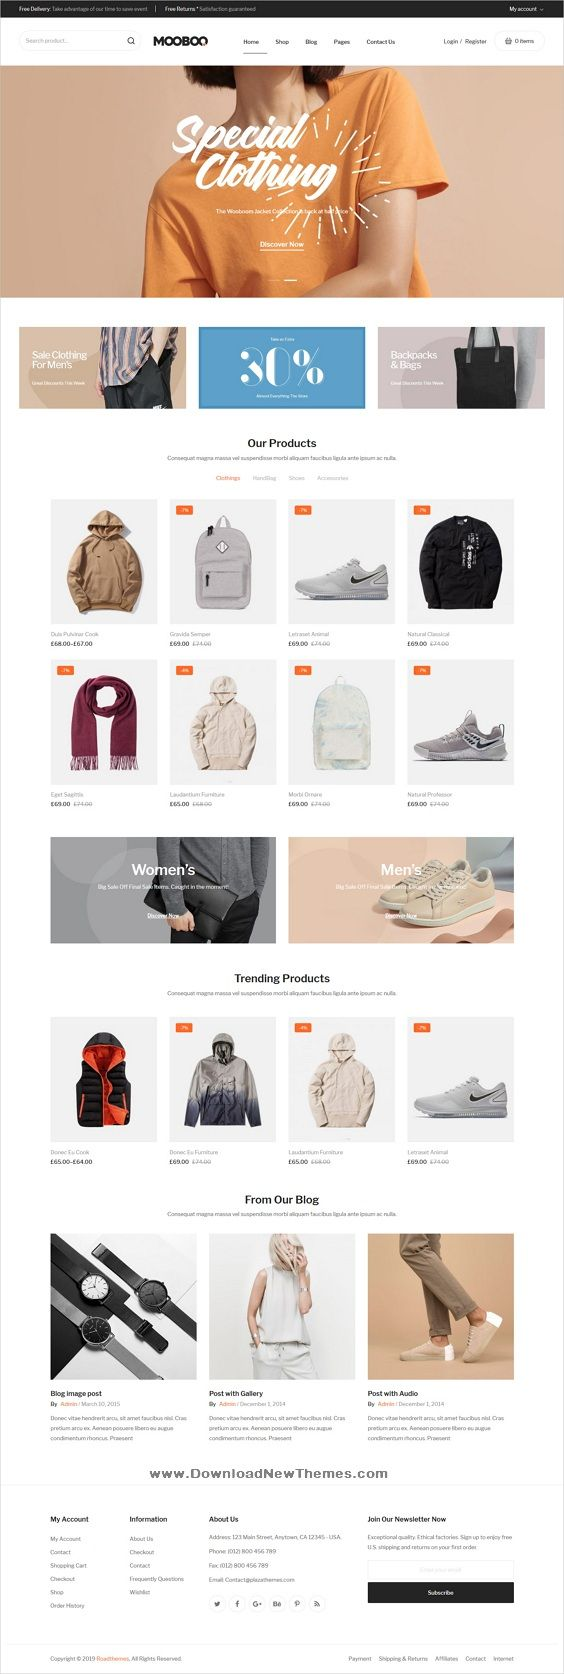 Mooboo is a clean, stylish and modern design responsive